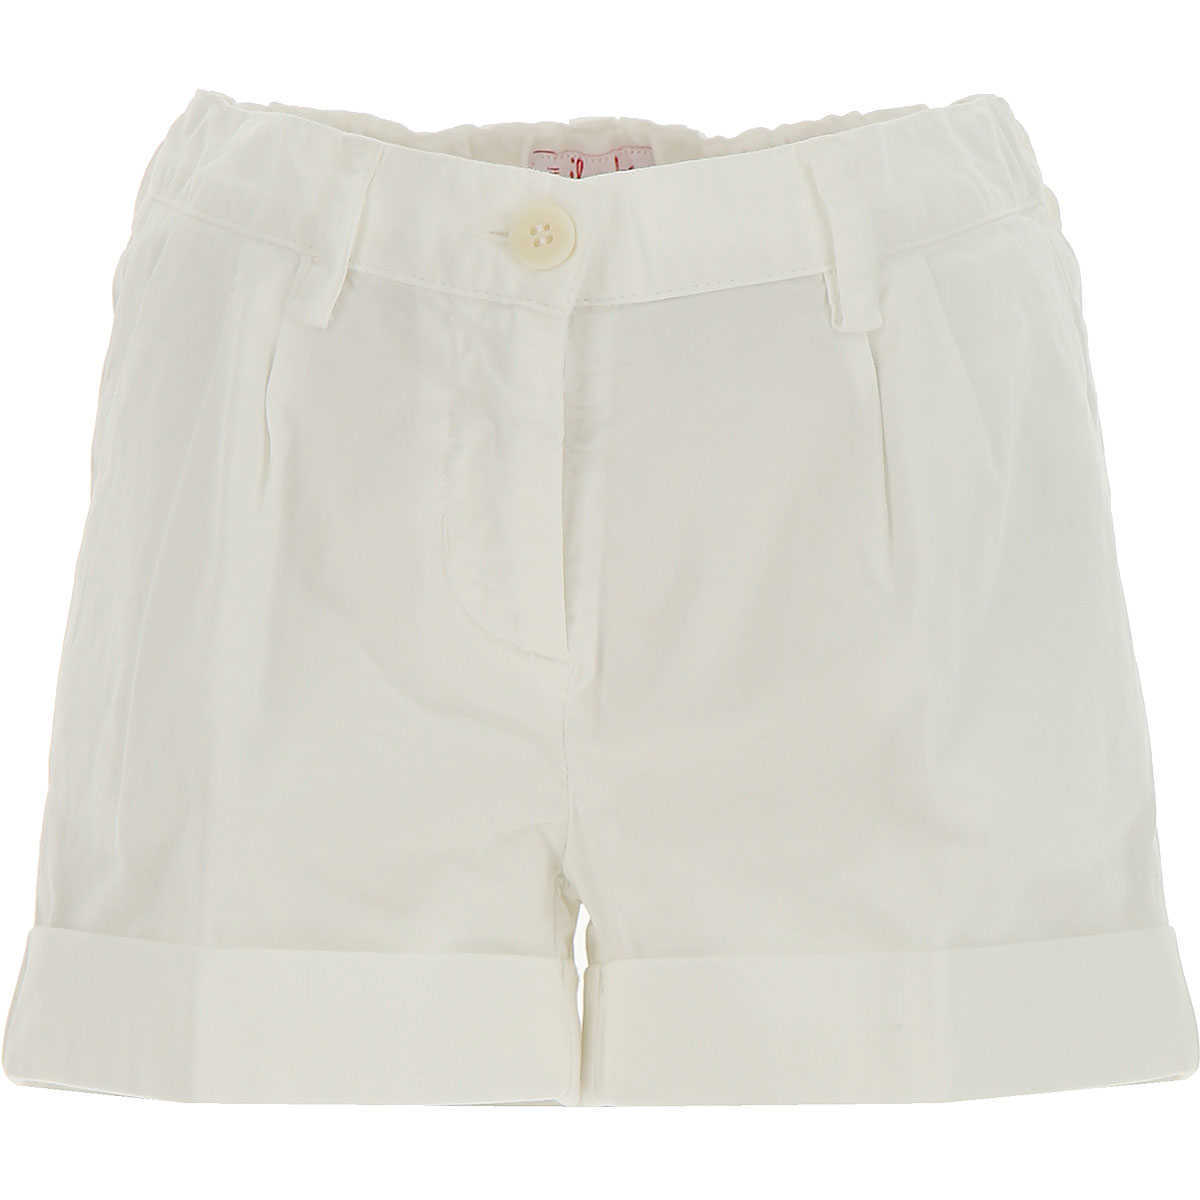 Il Gufo Kids Shorts for Girls in Outlet White Canada - GOOFASH - Womens SHORTS